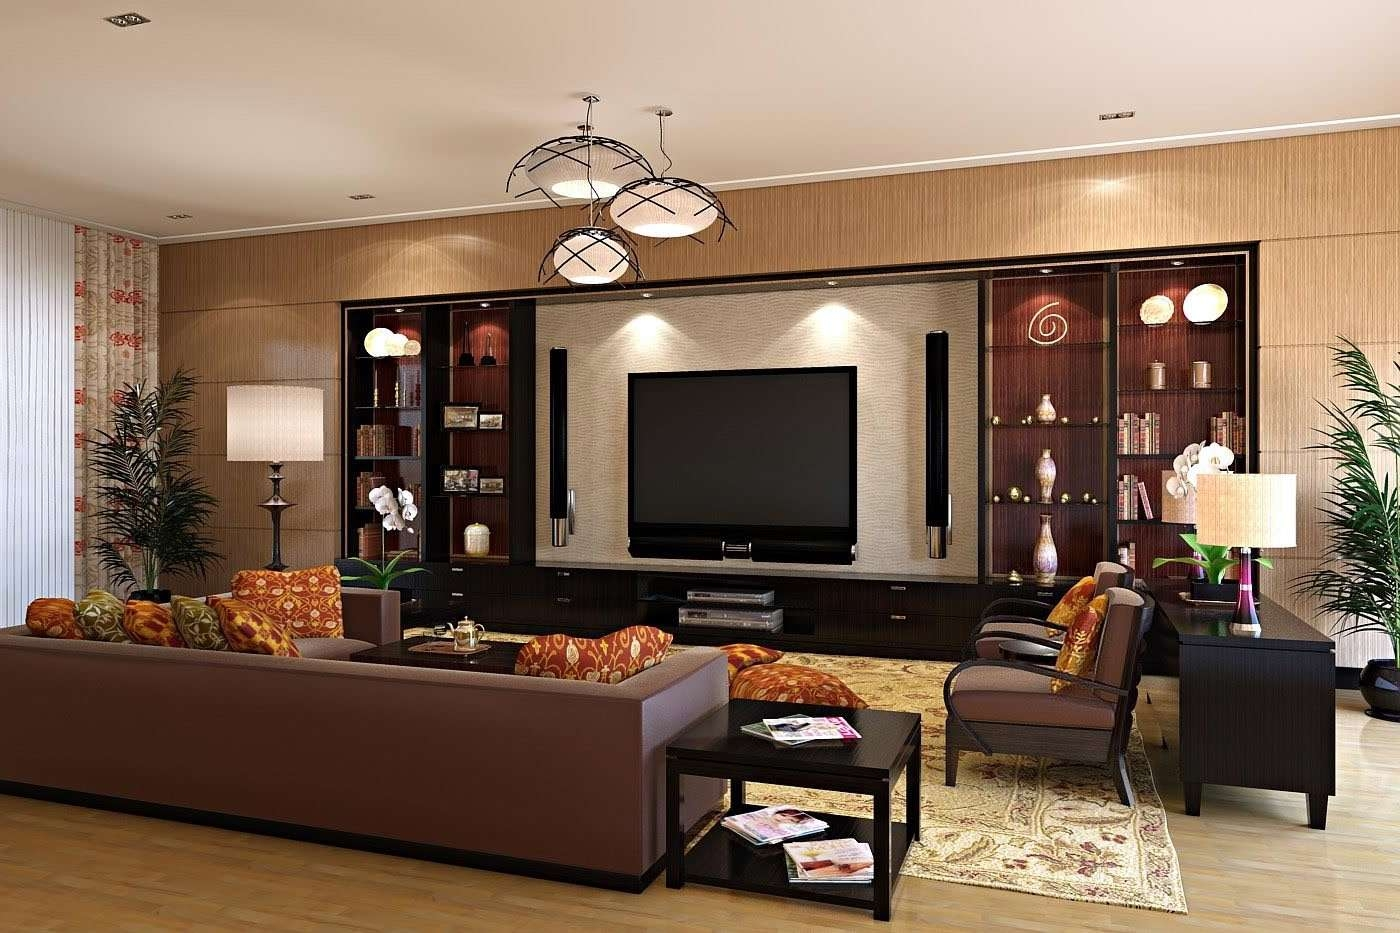 Living ~ Big Screen Tv Stands Furniture Tv Cabinet Wall Unit With Regard To Big Tv Stands Furniture (View 10 of 15)